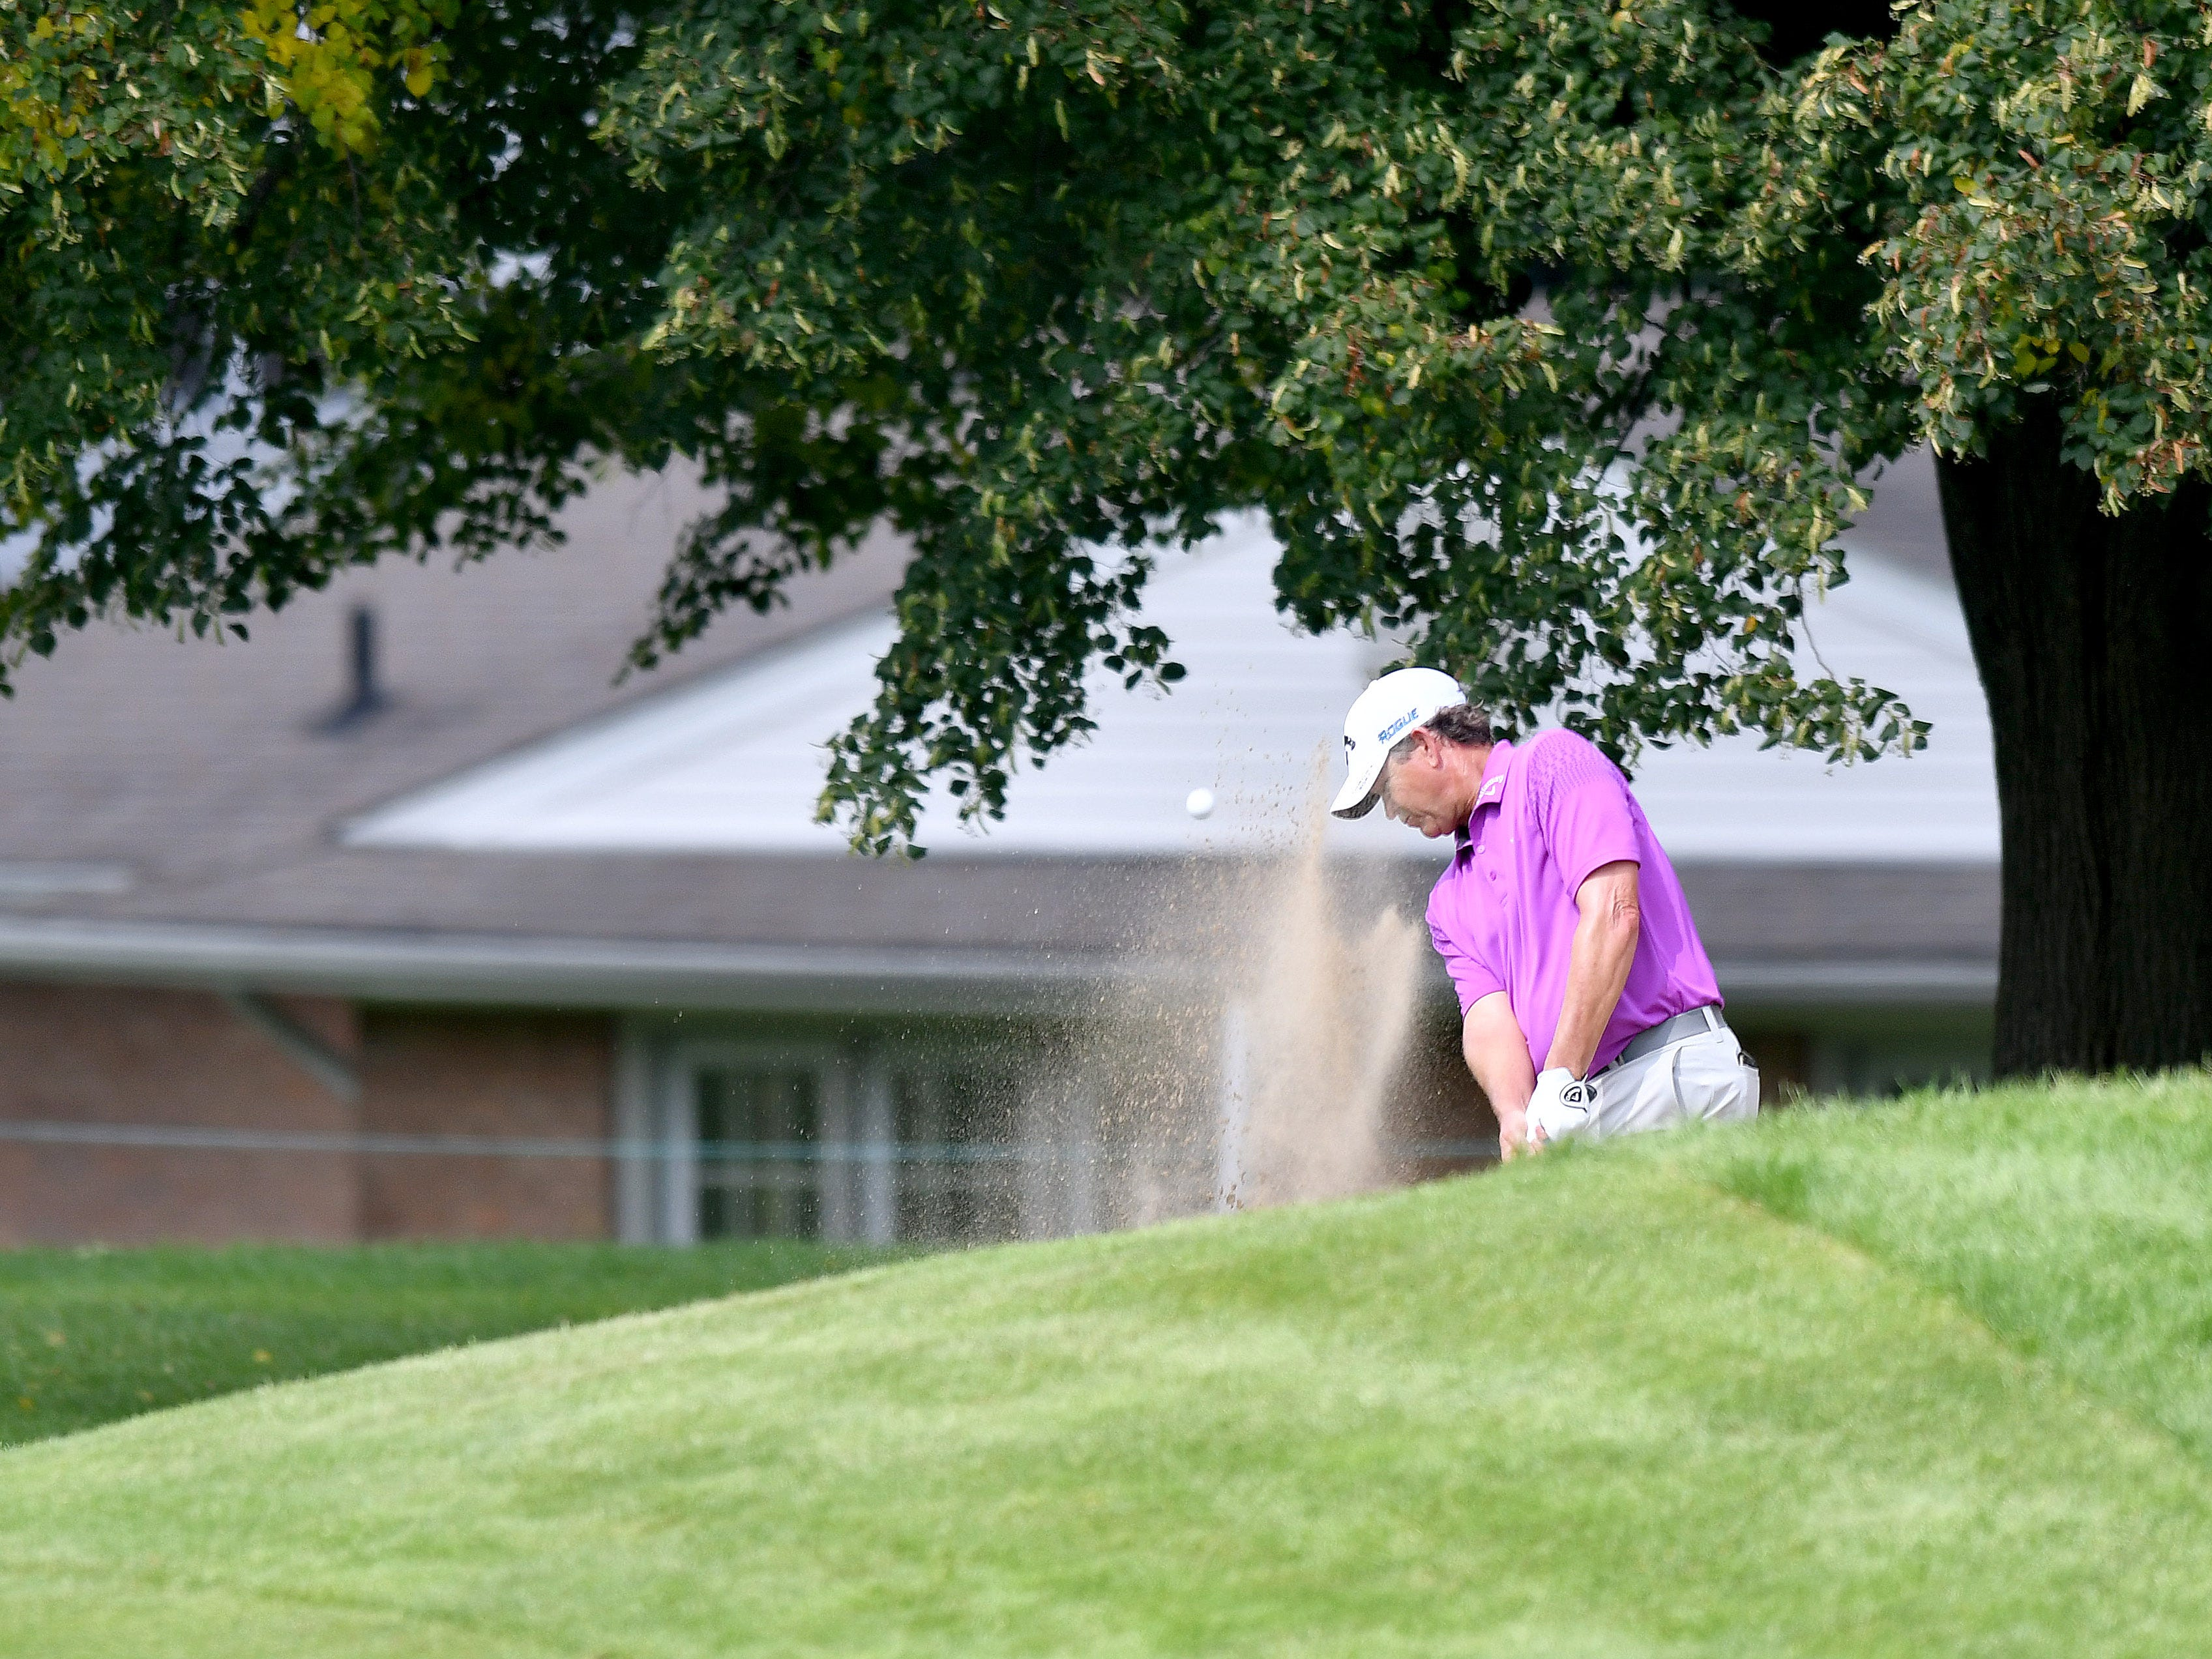 Lee Janzen hit out of a fairway bunker on the first hole at the Ally Challenge.